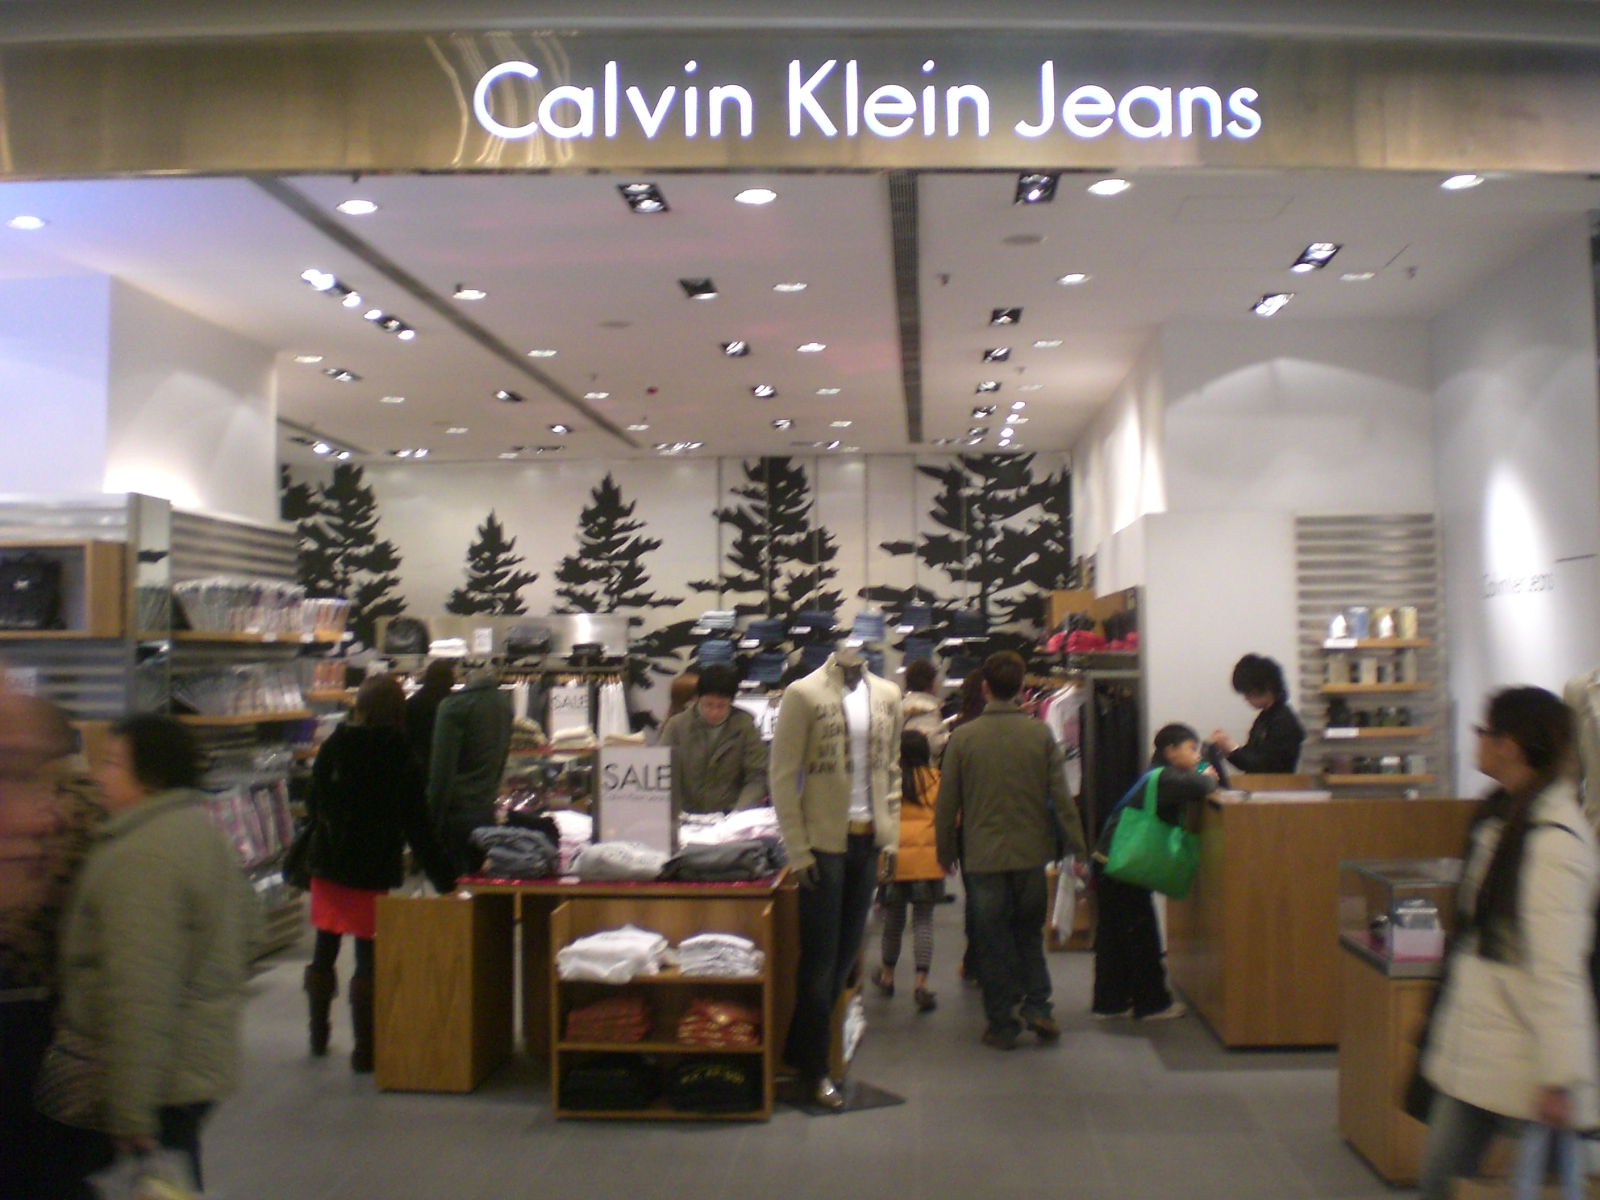 file hk kwun tong apm shop calvin klein jeans jpg wikimedia commons. Black Bedroom Furniture Sets. Home Design Ideas